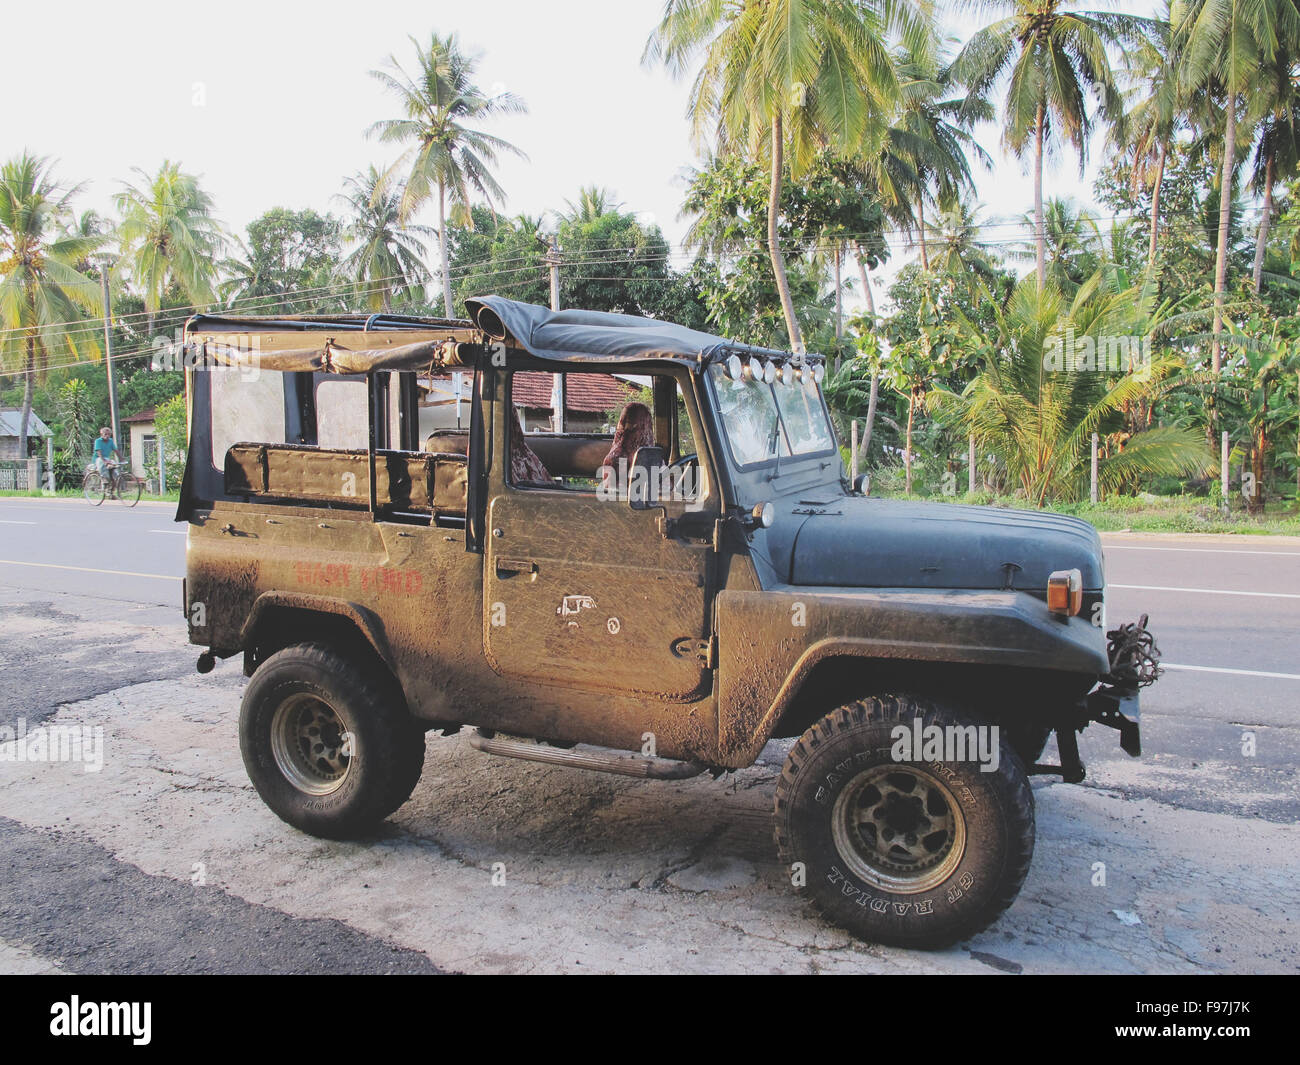 Old Pick-Up Truck Stock Photo: 91751735 - Alamy